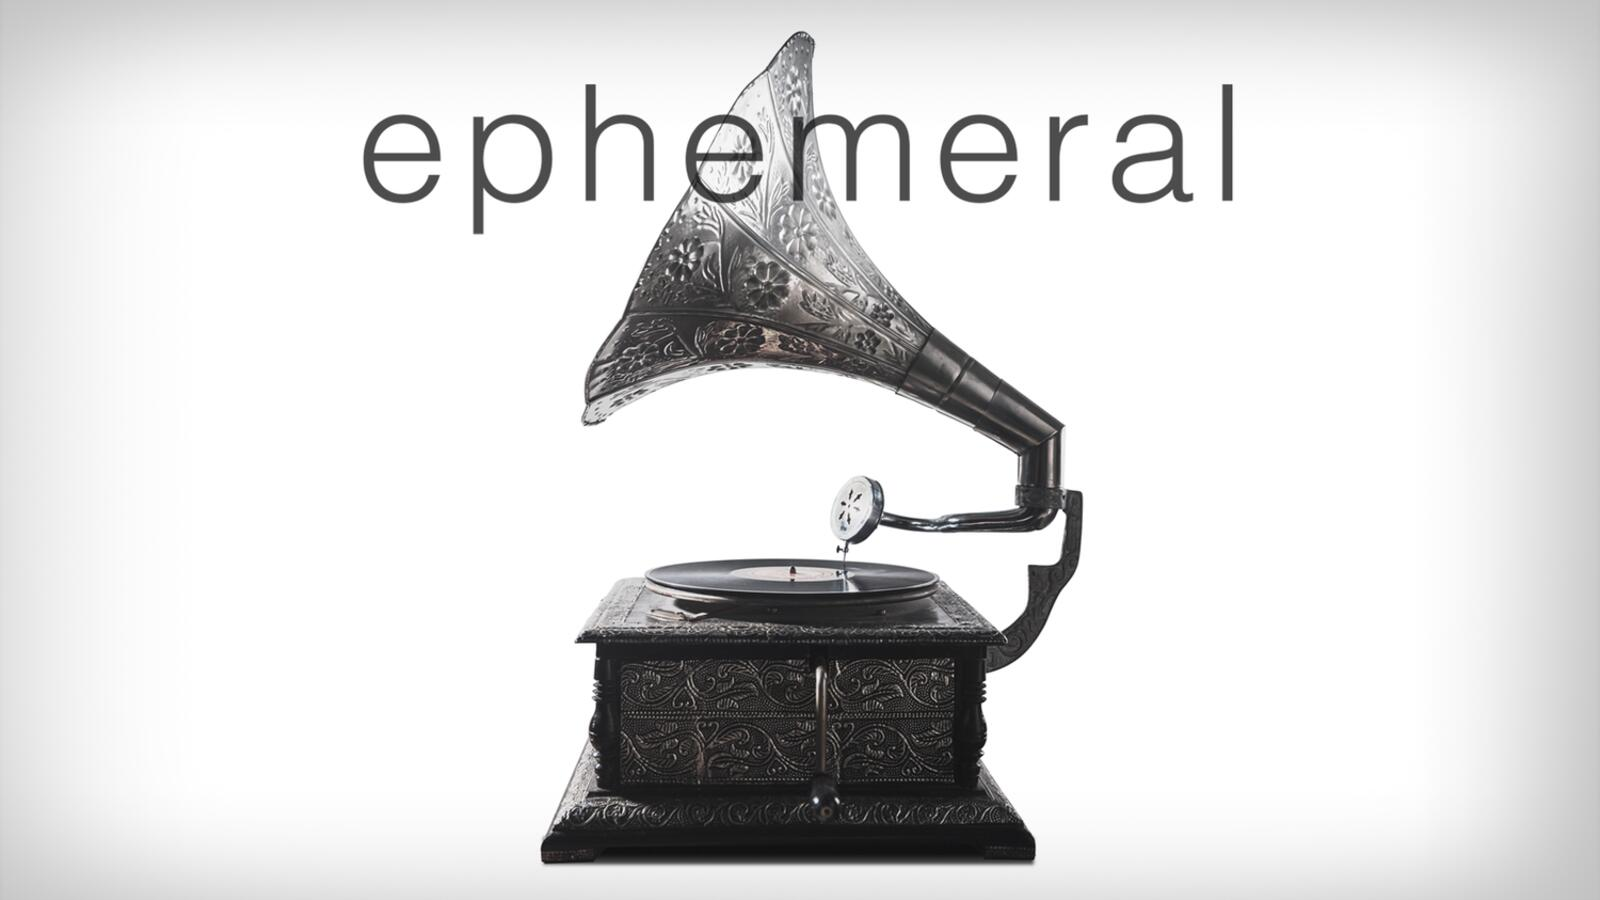 About Ephemeral